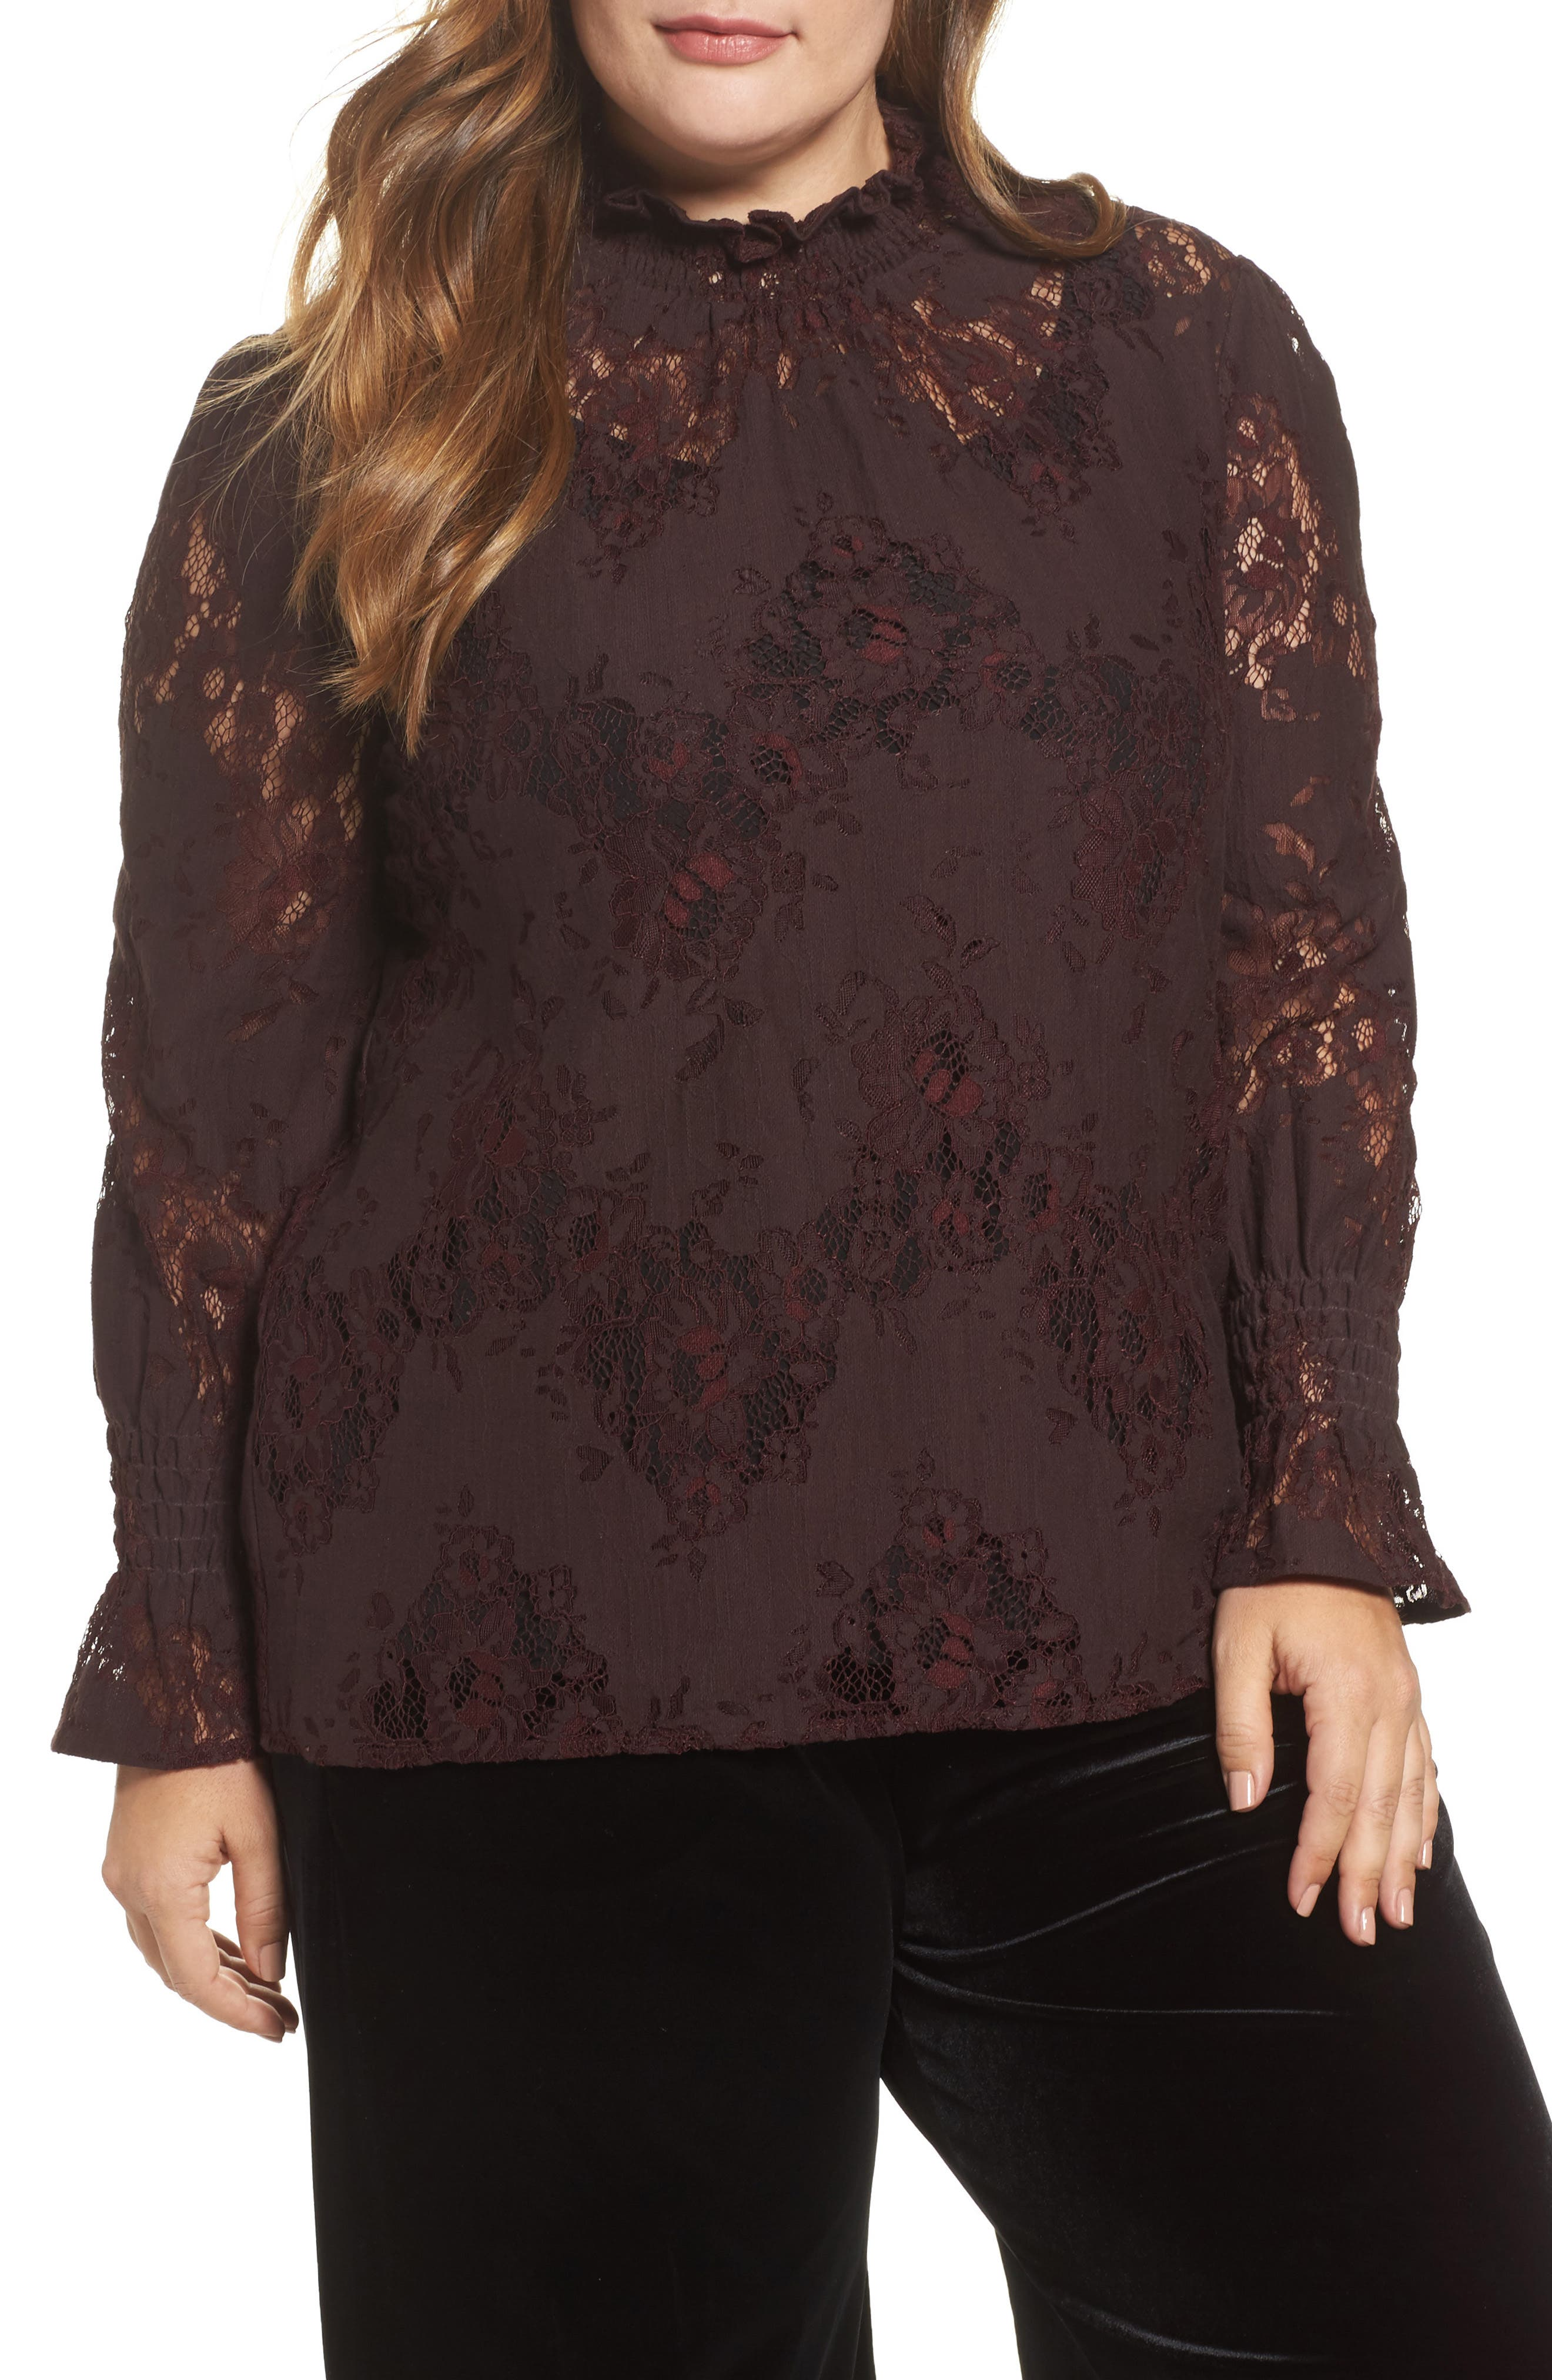 High Neck Ruffle & Lace Blouse,                             Main thumbnail 1, color,                             Burgundy